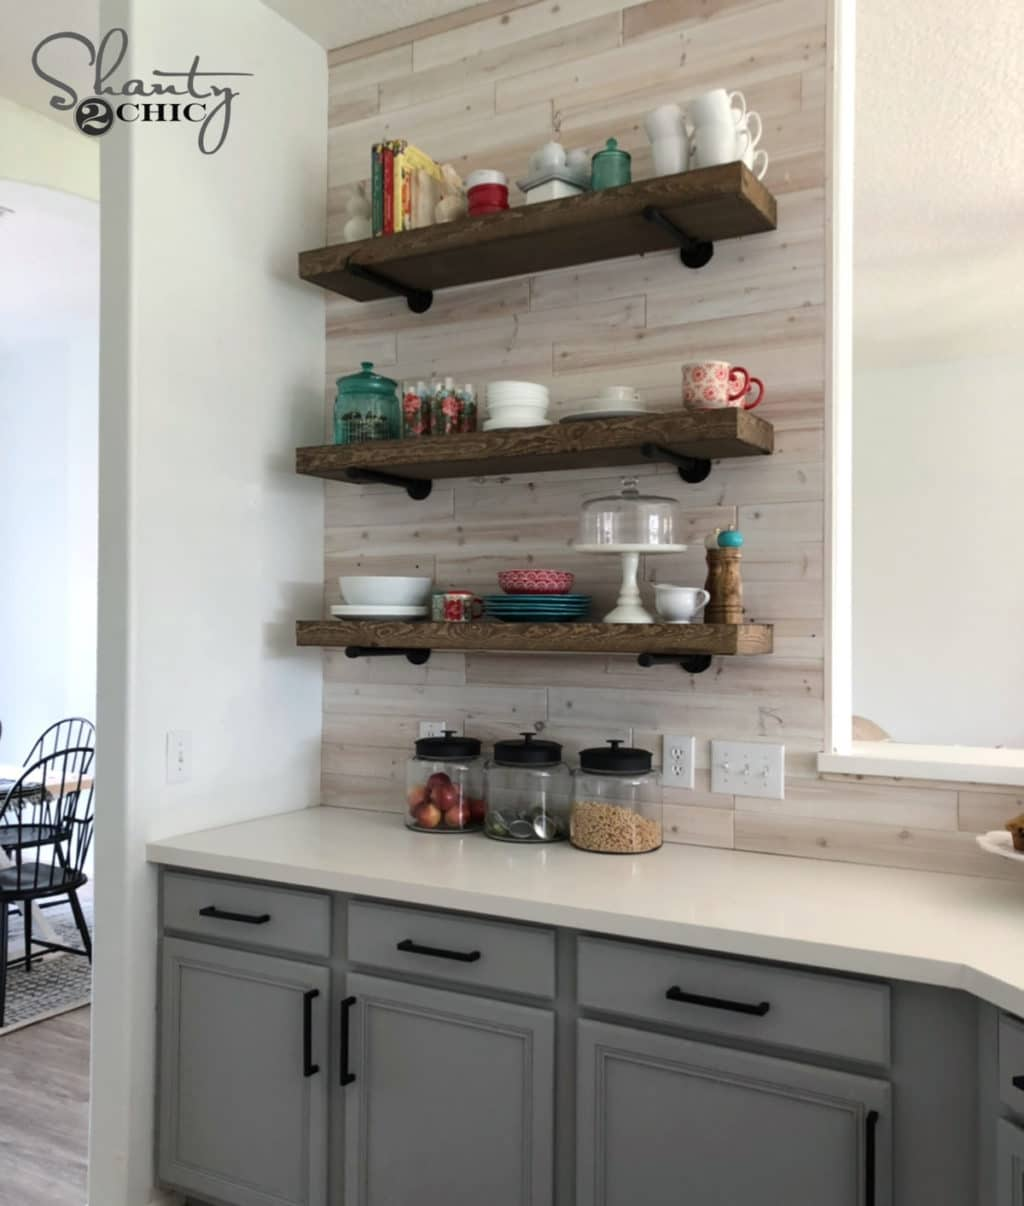 Budget-Friendly DIY Shelving Ideas for Your Home | The ...